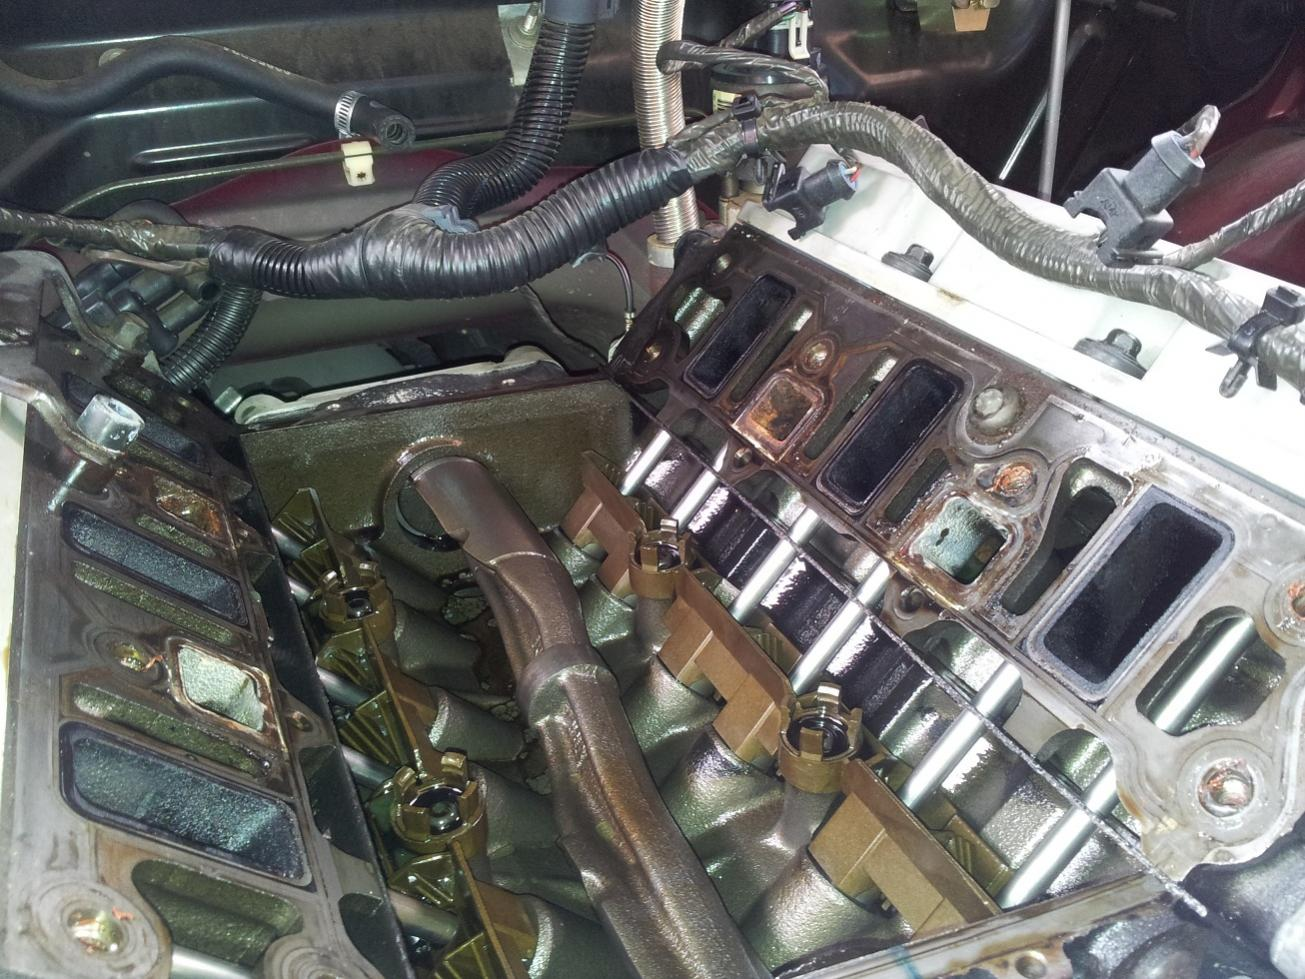 VT-VX] - VS - VY Series 2 Inlet Manifold Gasket Replacement